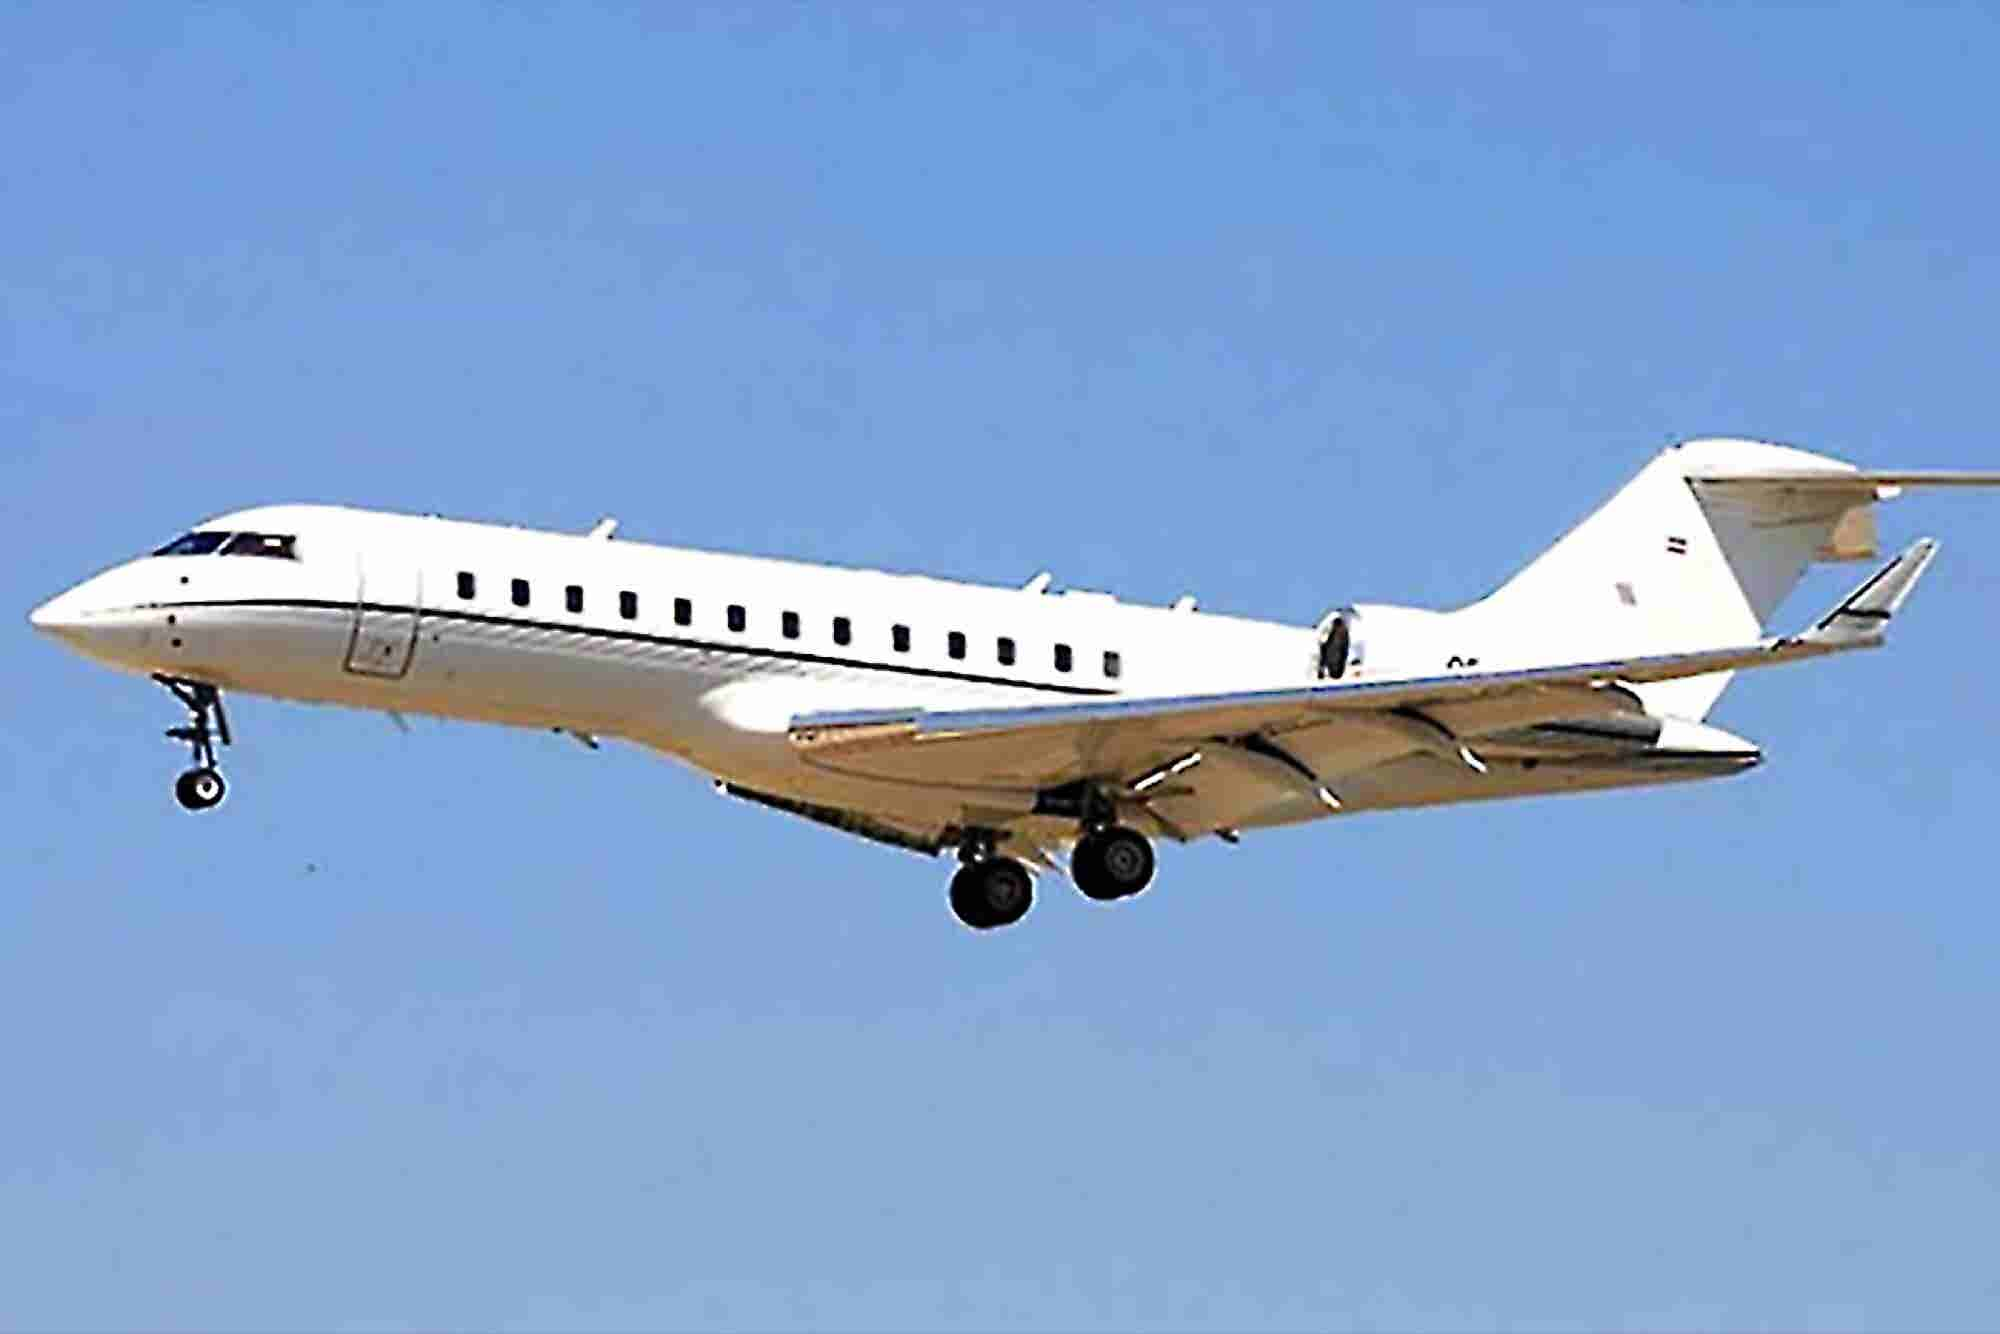 Despite Financial Troubles, BlackBerry Bought a Private Jet in July